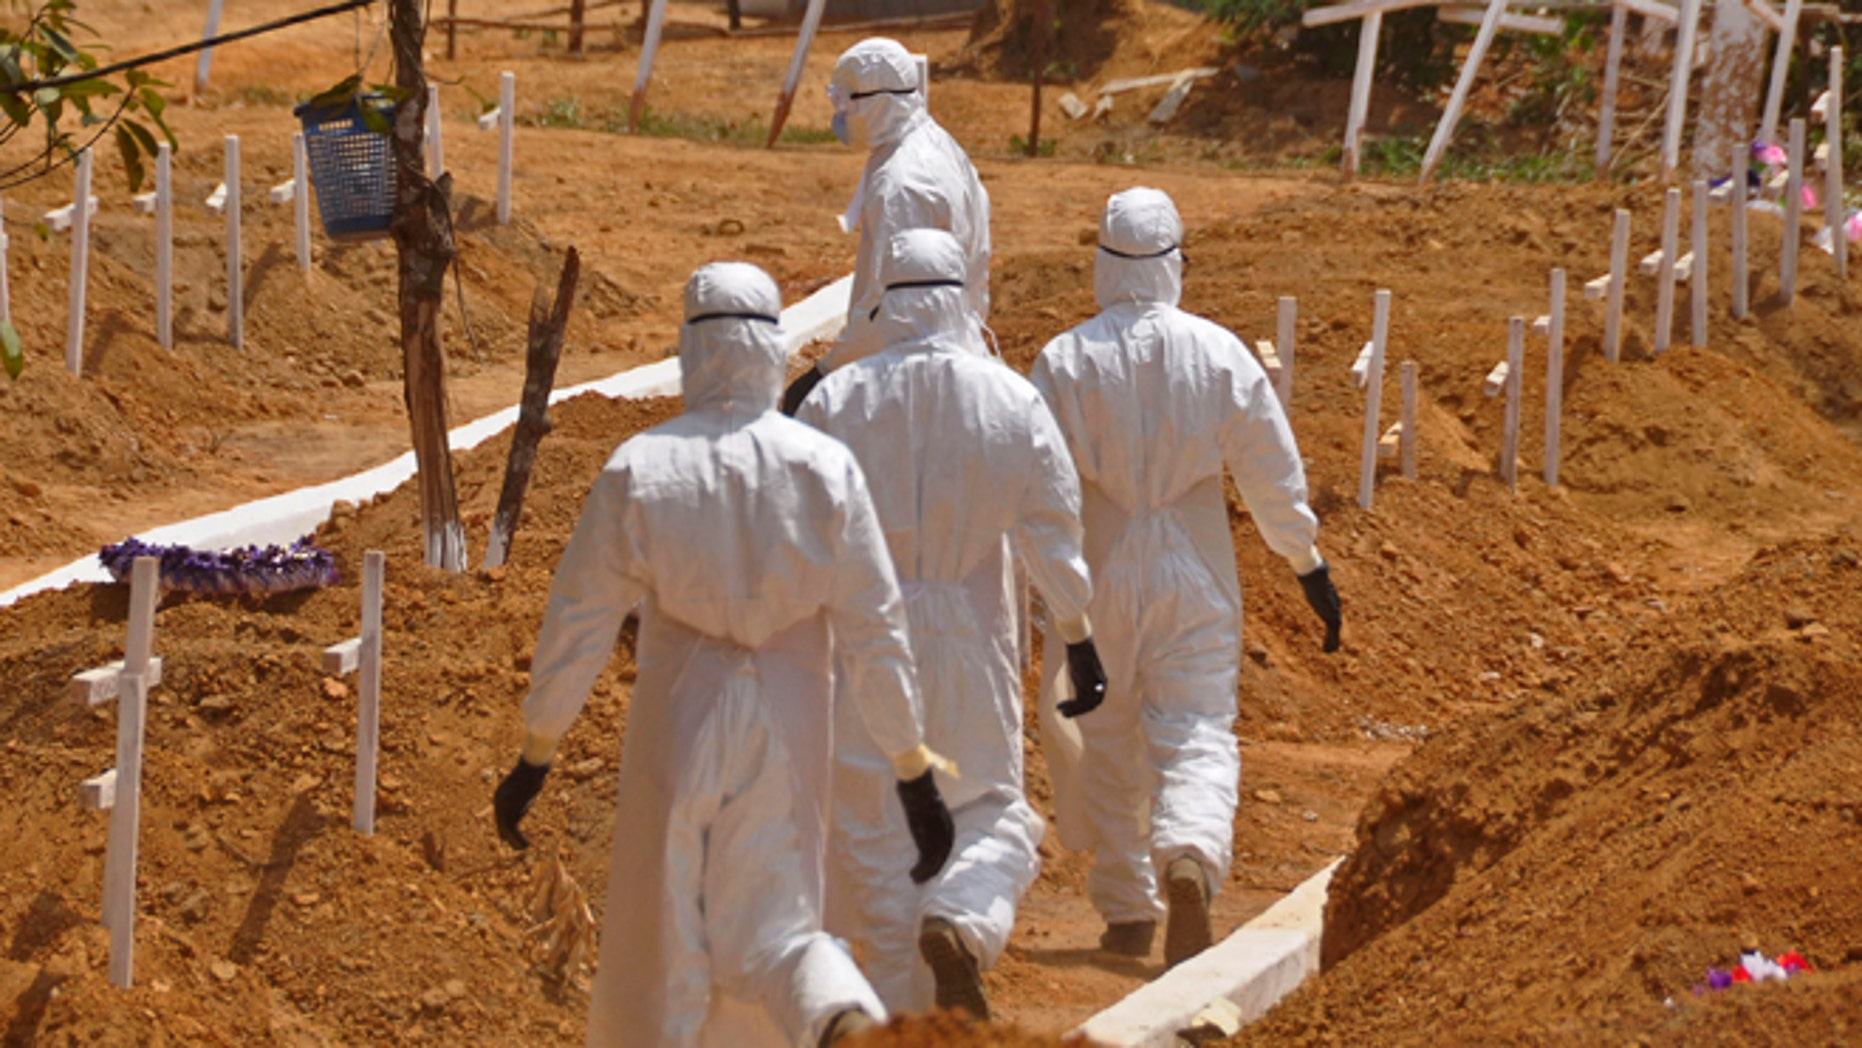 FILE- In this file photo dated Wednesday, March 11, 2015, health workers walk inside a new graveyard for Ebola victims, on the outskirts of Monrovia, Liberia. Despite the drop in reported Ebola cases, Dr. Bruce Aylward, leading WHOs Ebola response, declared Friday April 10, 2015, that its too early for World Health Organization to downgrade the global emergency status of the biggest-ever Ebola outbreak in Africa. (AP Photo/Abbas Dulleh, FILE)